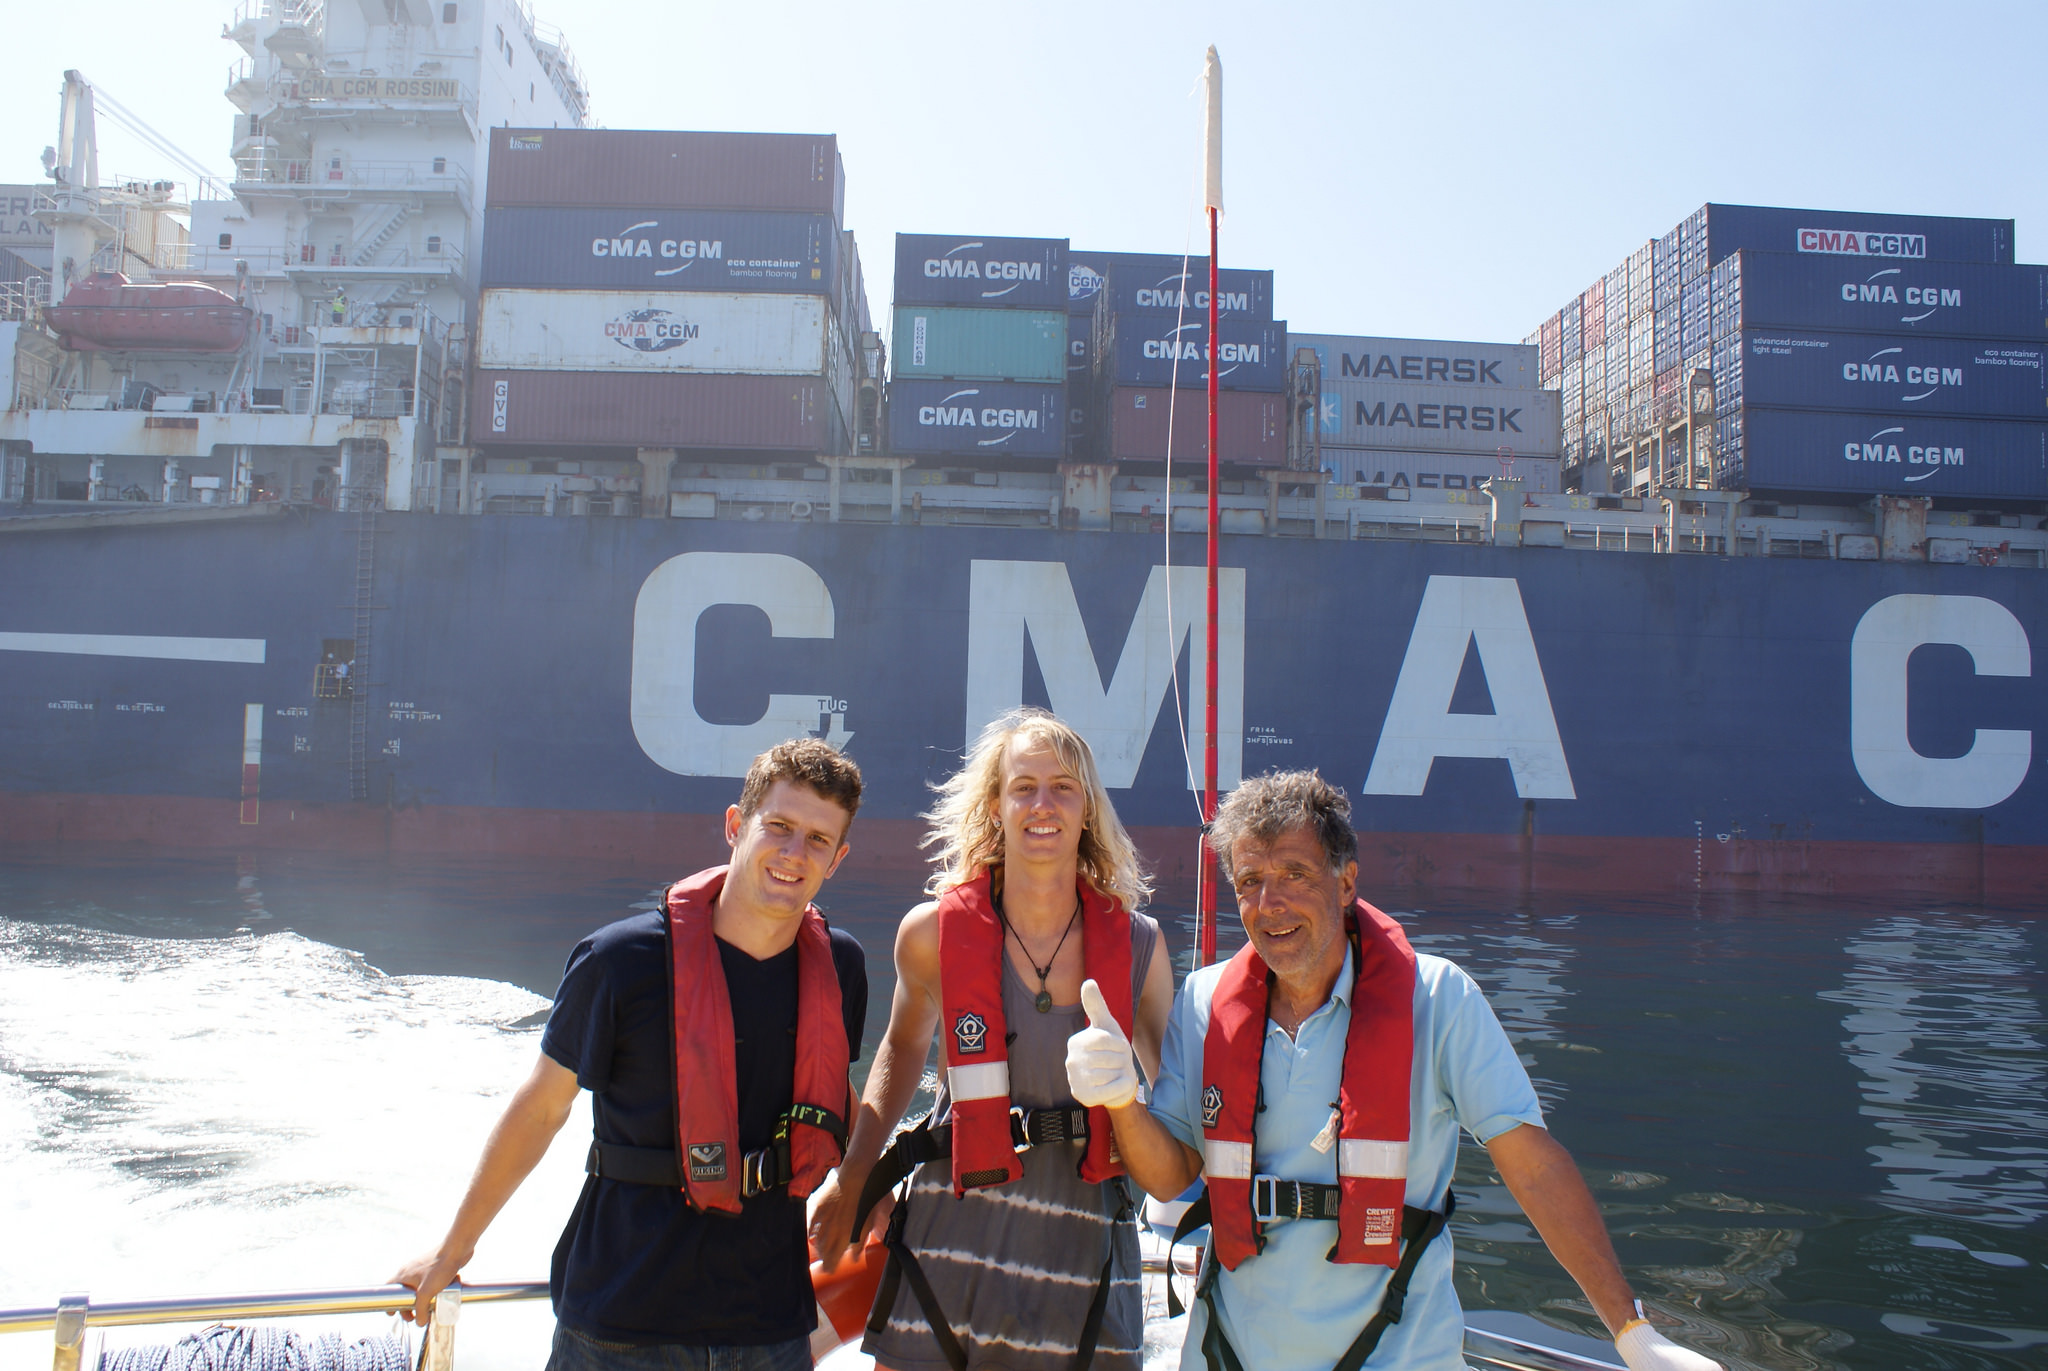 Jean Sitruk, 65, from Lyon, France and Kyle Castelyn, 20, from Strand, Cape Town and NSRI Crewman Roelf Daling aboard Spirit of Vodacom after being taken off the cargo vessel CMA CGM Rossini. Picture: Paula Leech/NSRI